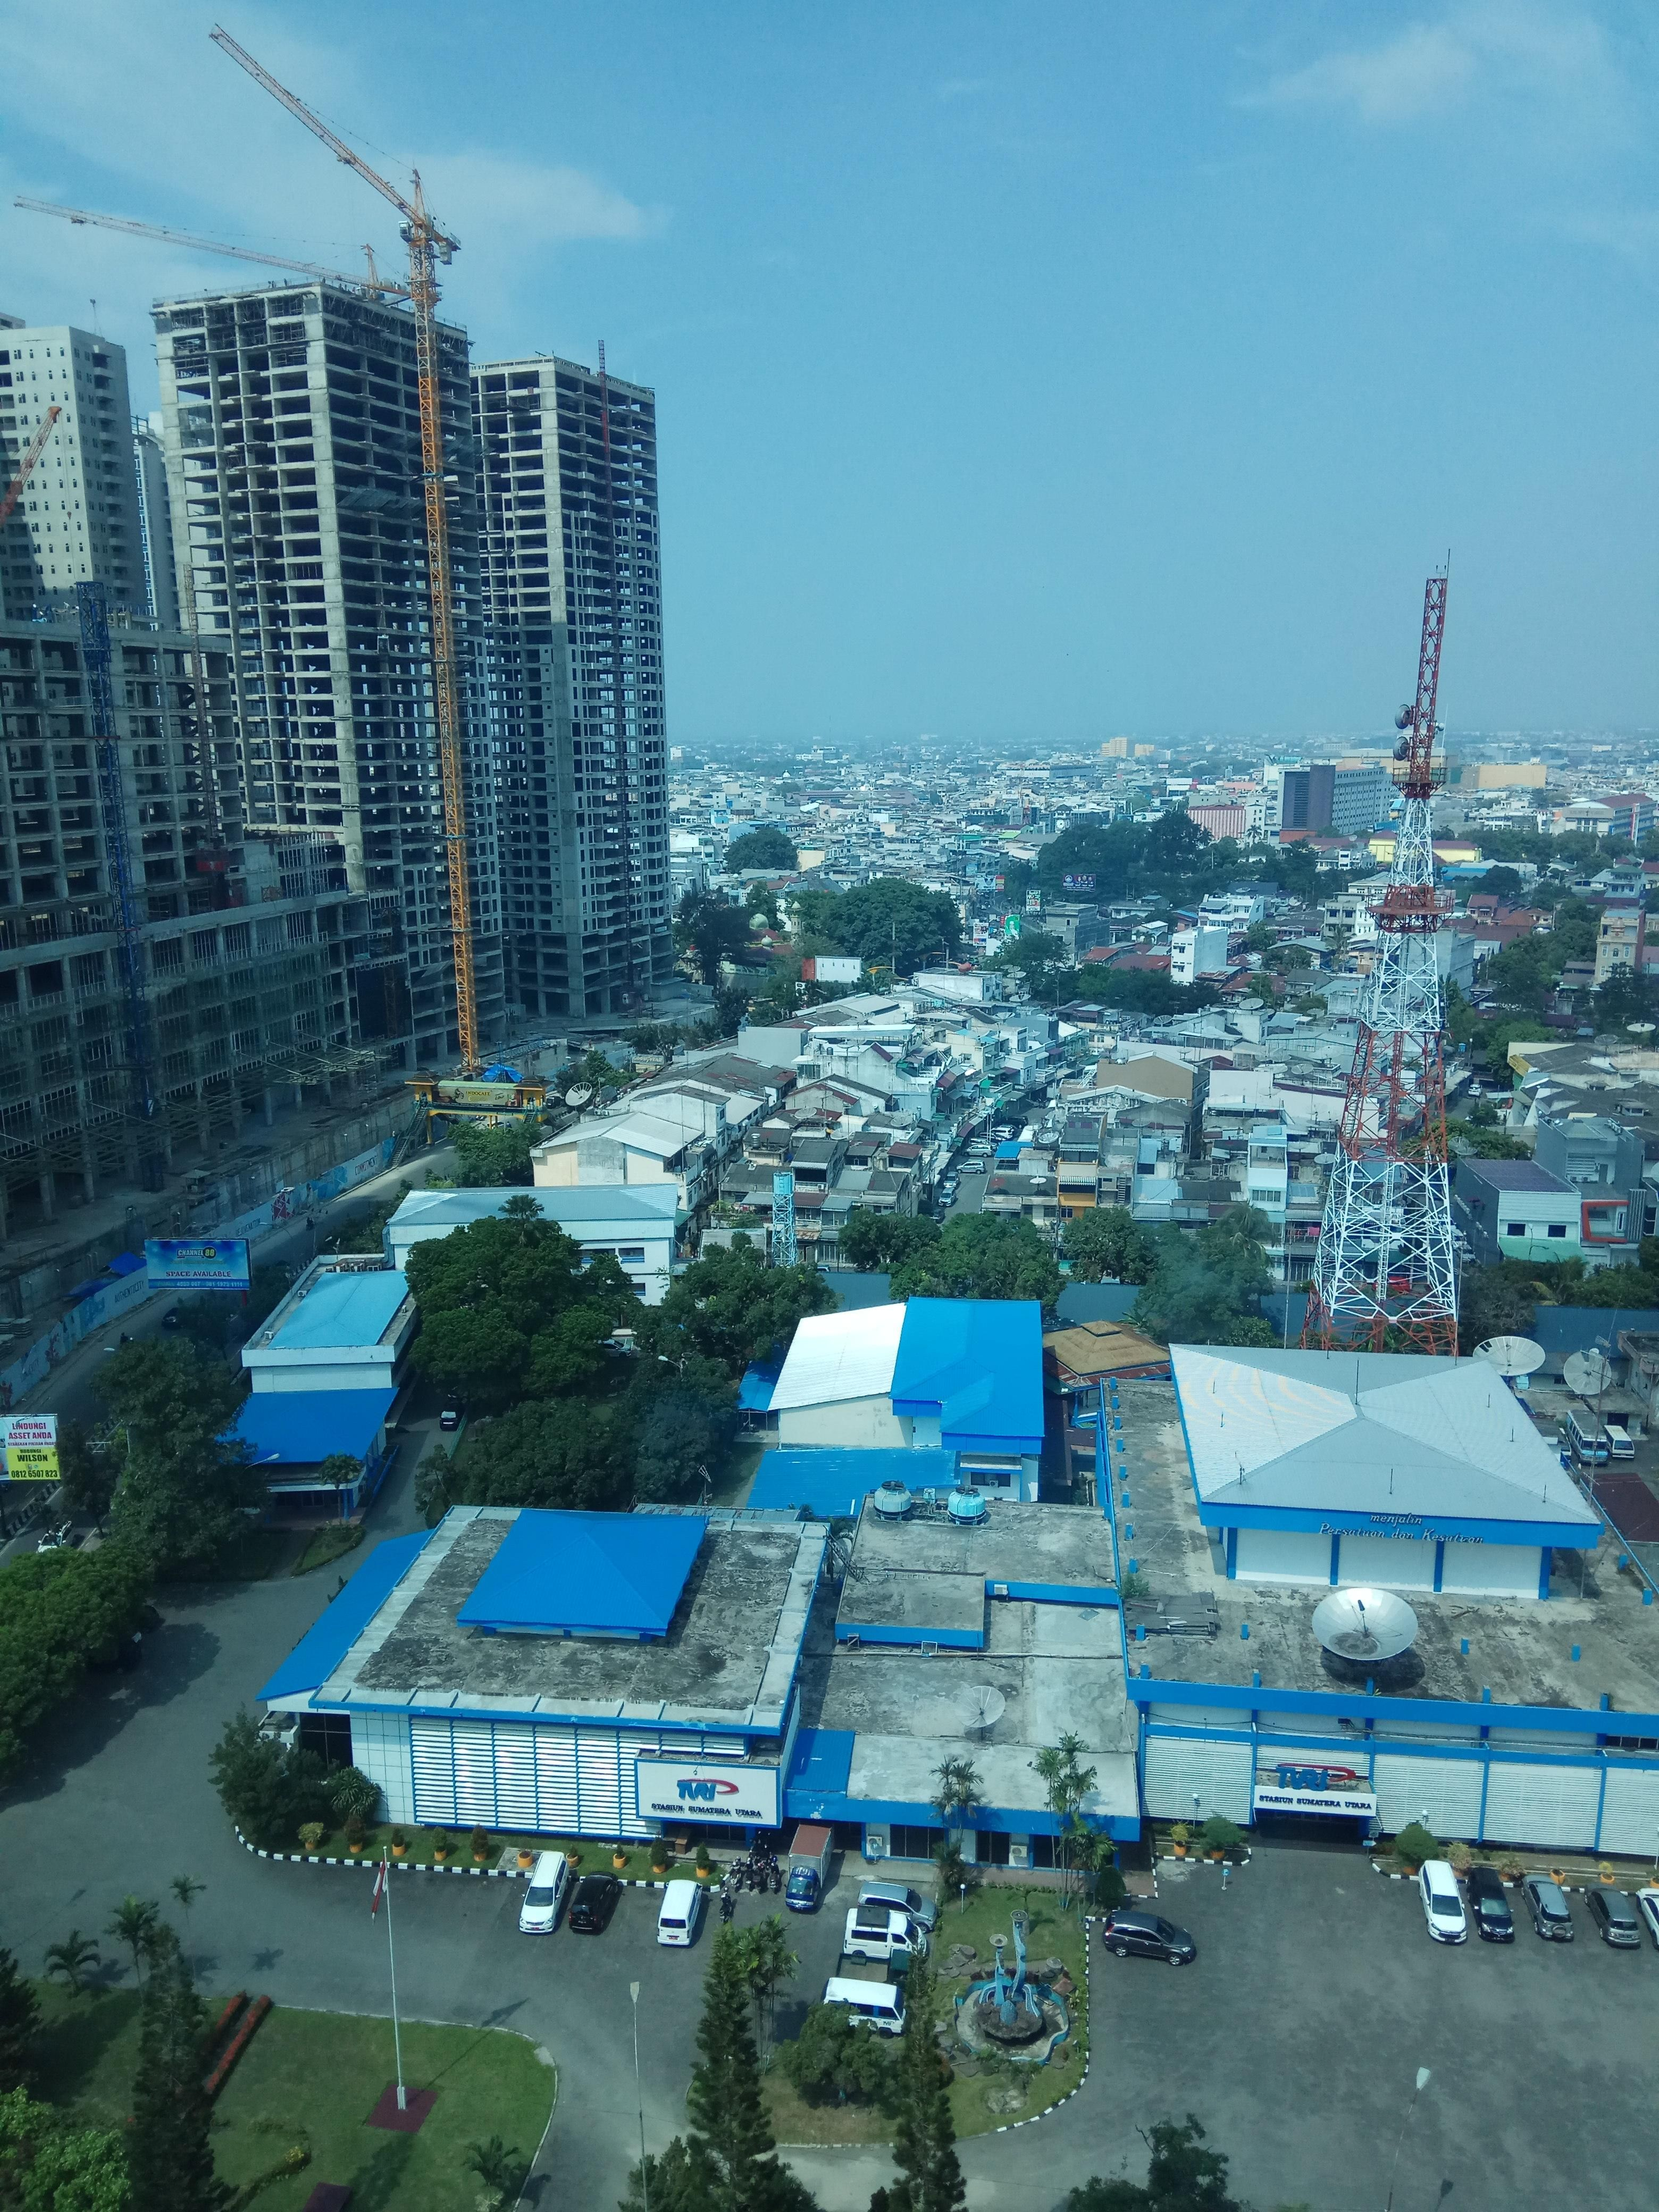 Medan Indonesia from JW Marriot Hotel 15th floor. The new